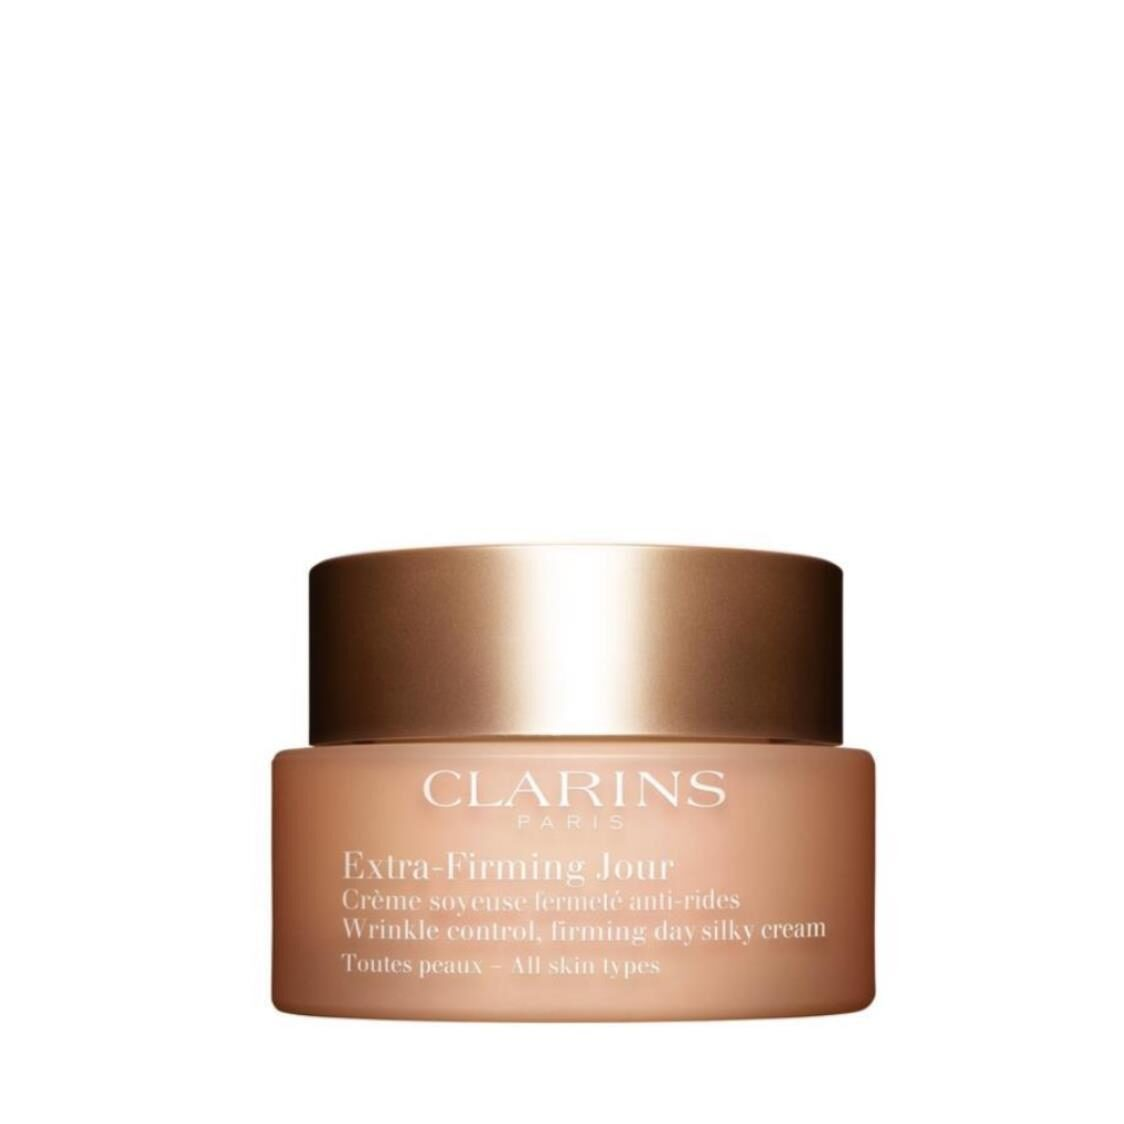 Extra-Firming Day Silky Cream for All Skin Types 50ml